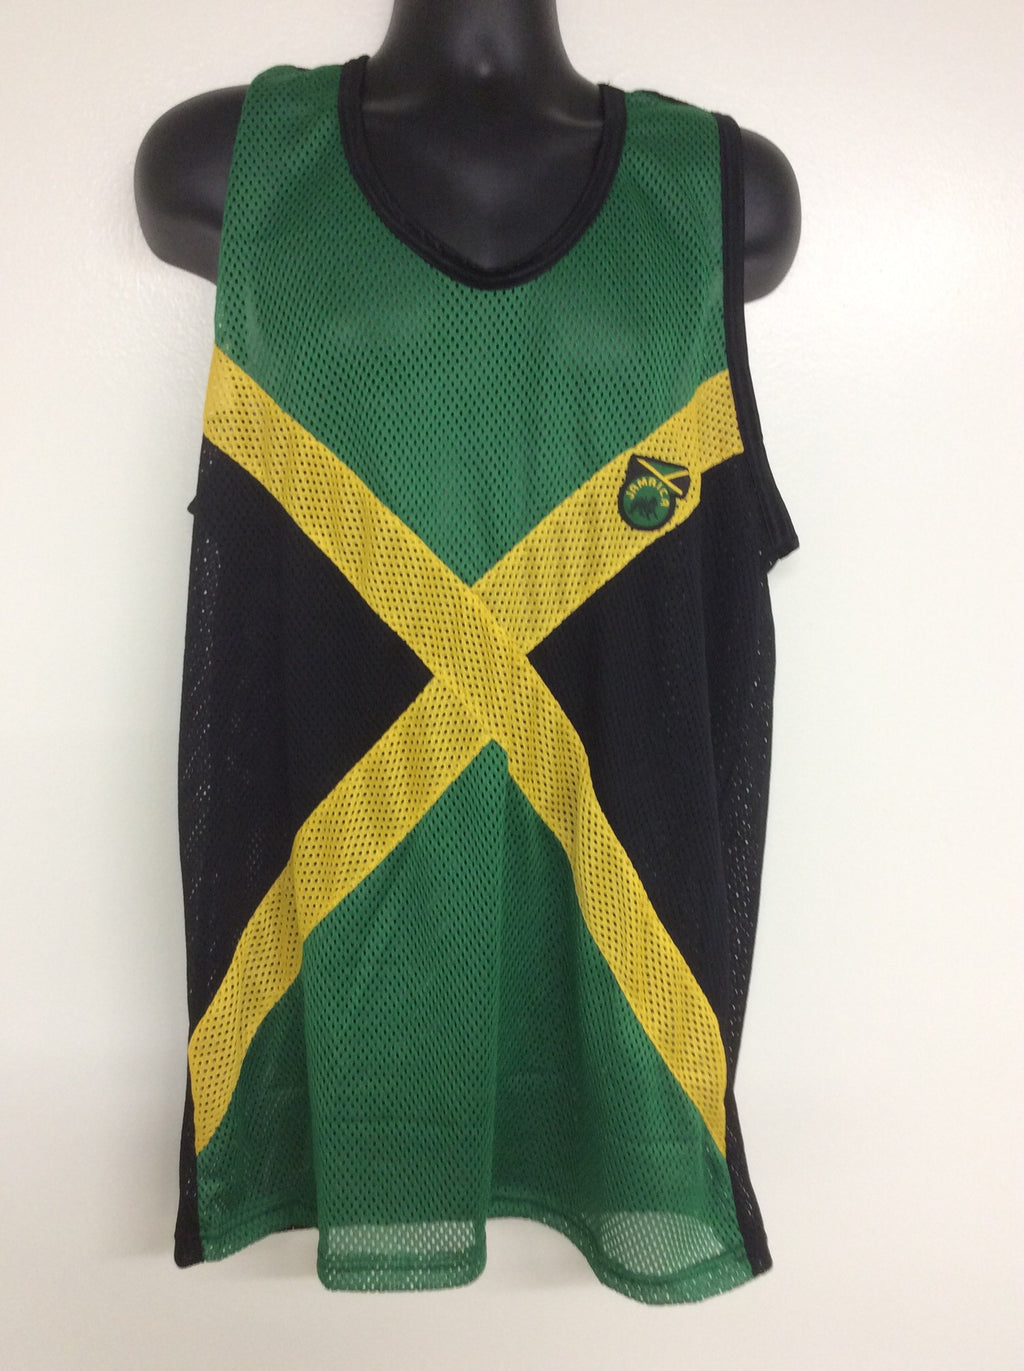 Jamaican men's tank top (Wholesale)